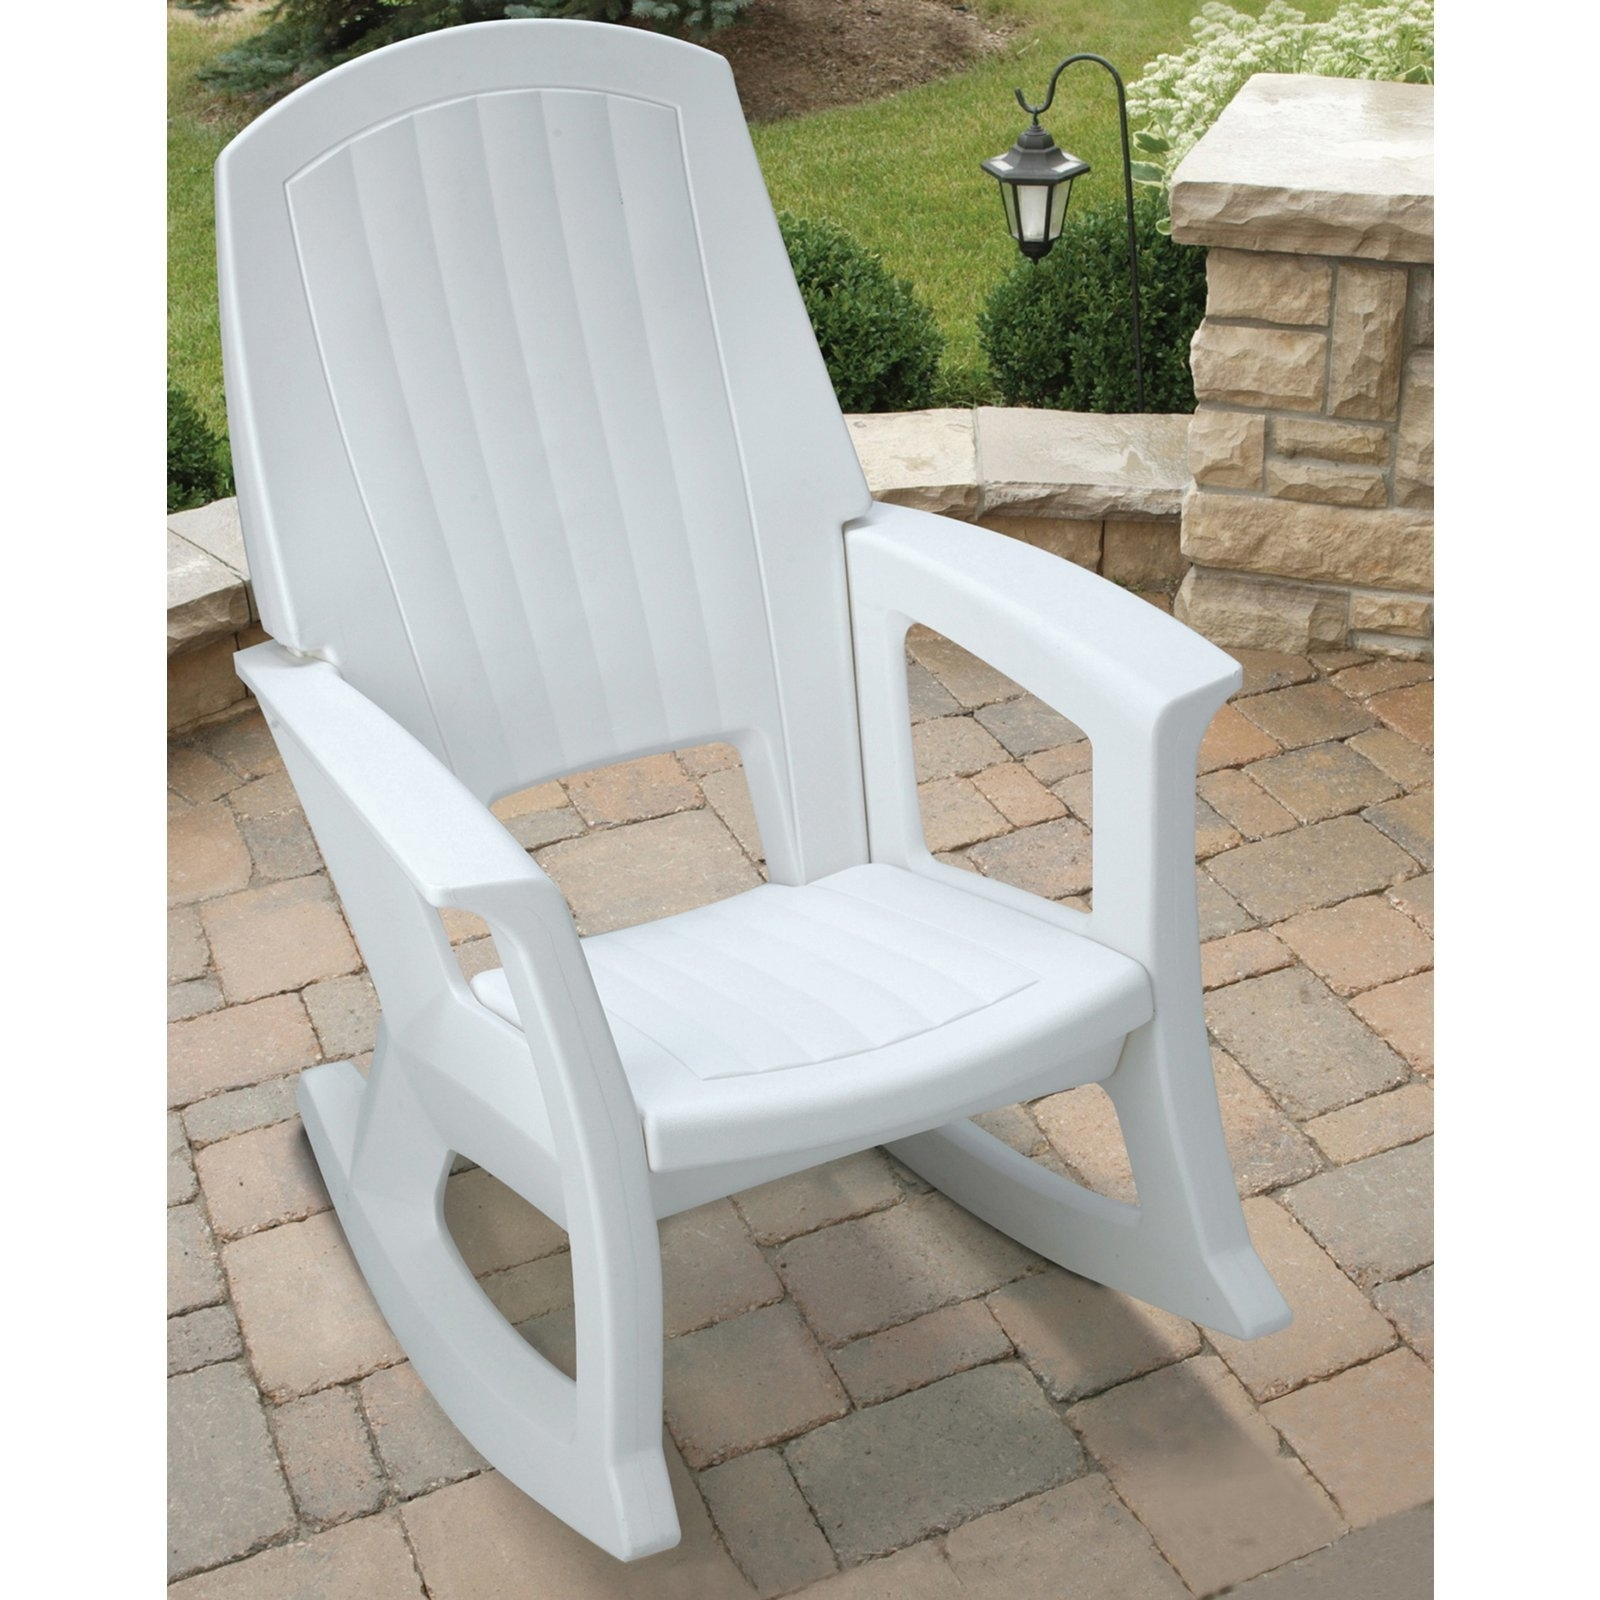 Rocking Chairs For Outdoors With 2019 Lovely Cheap Patio Chairs Semco Recycled Plastic Rocking Chair (View 14 of 20)